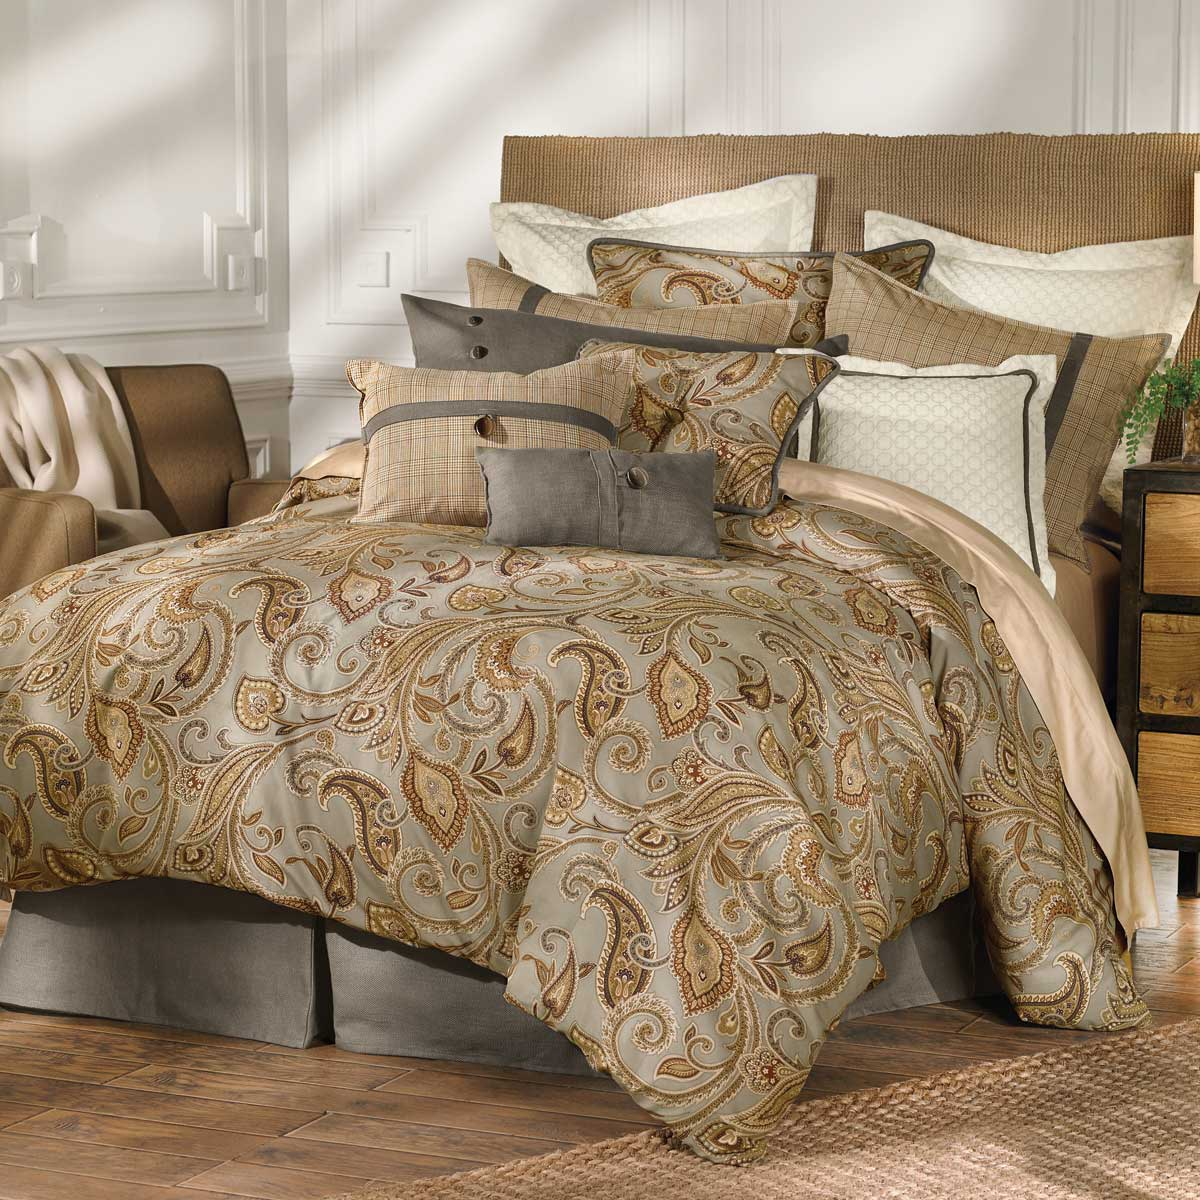 Piedmont Comforter Set - Super King